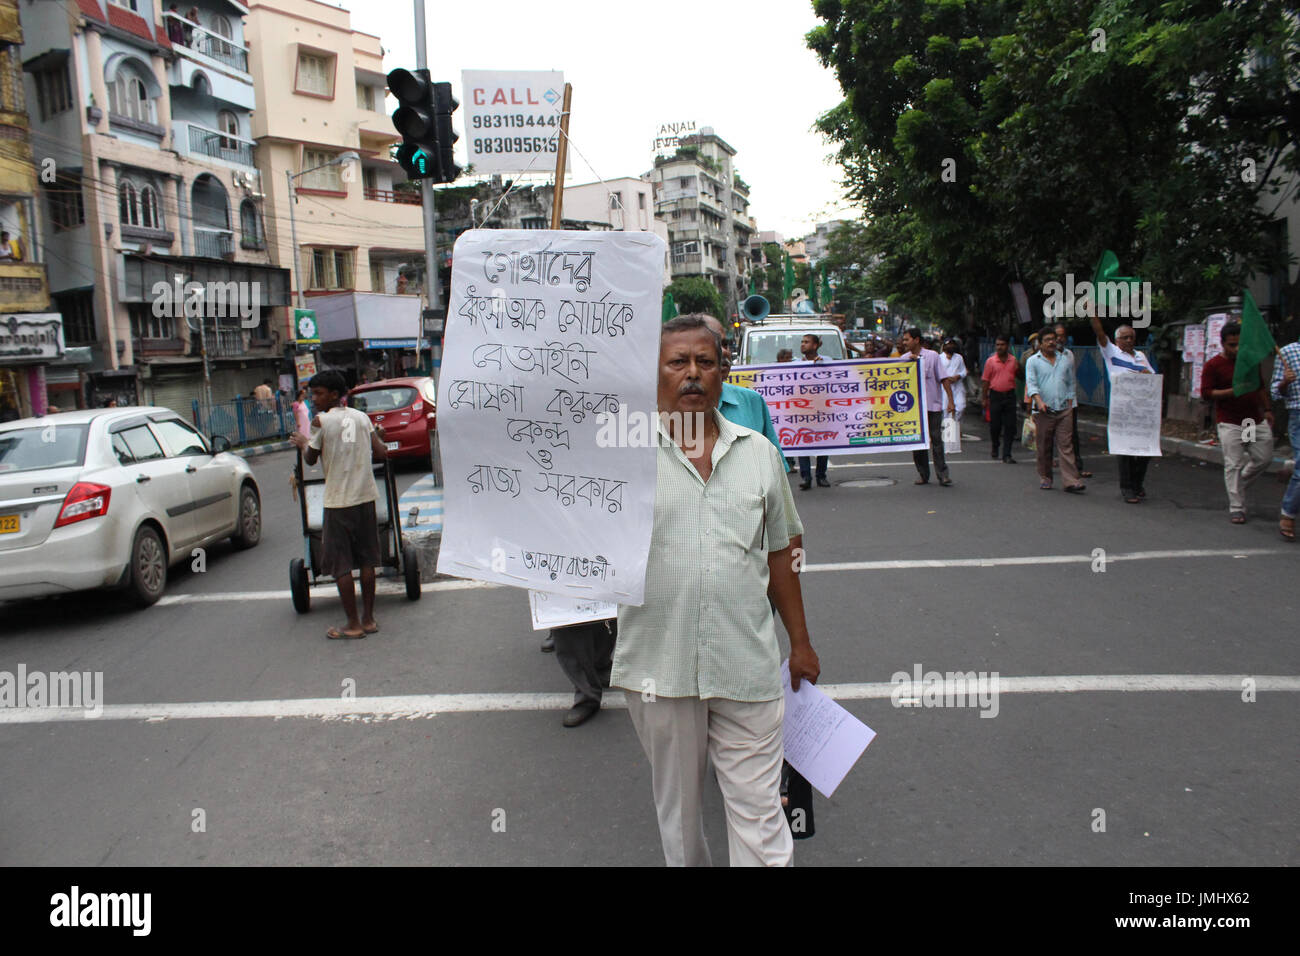 Amra Bangali supporters during a protest demanded the arrest of Gorkha Janamukti Morcha leader Bimal Gurung on July 26, 2017 in Kolkata, India. (Photo by Sanjay Purkait/Pacific Press) - Stock Image